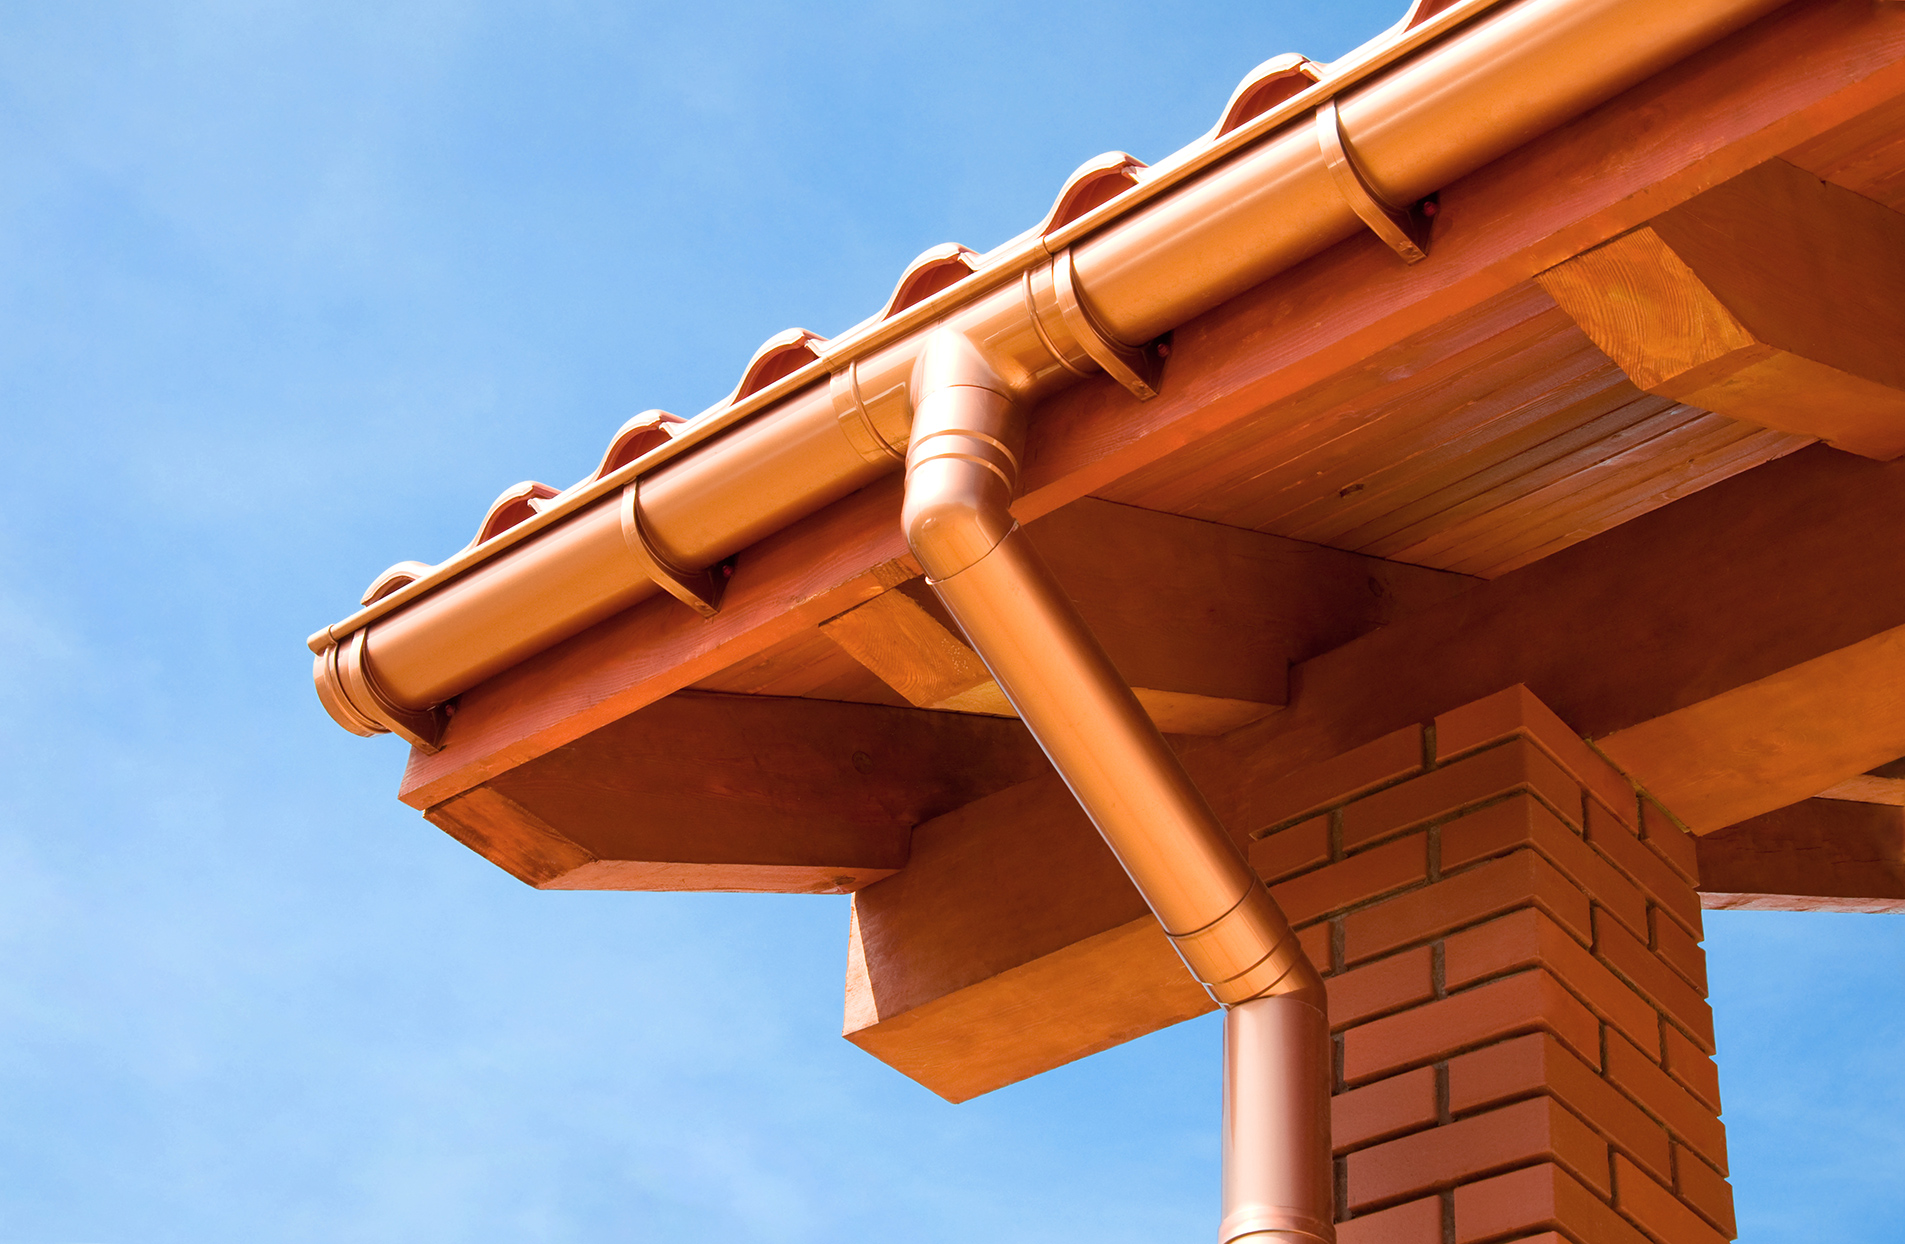 downspout and gutter on orange house